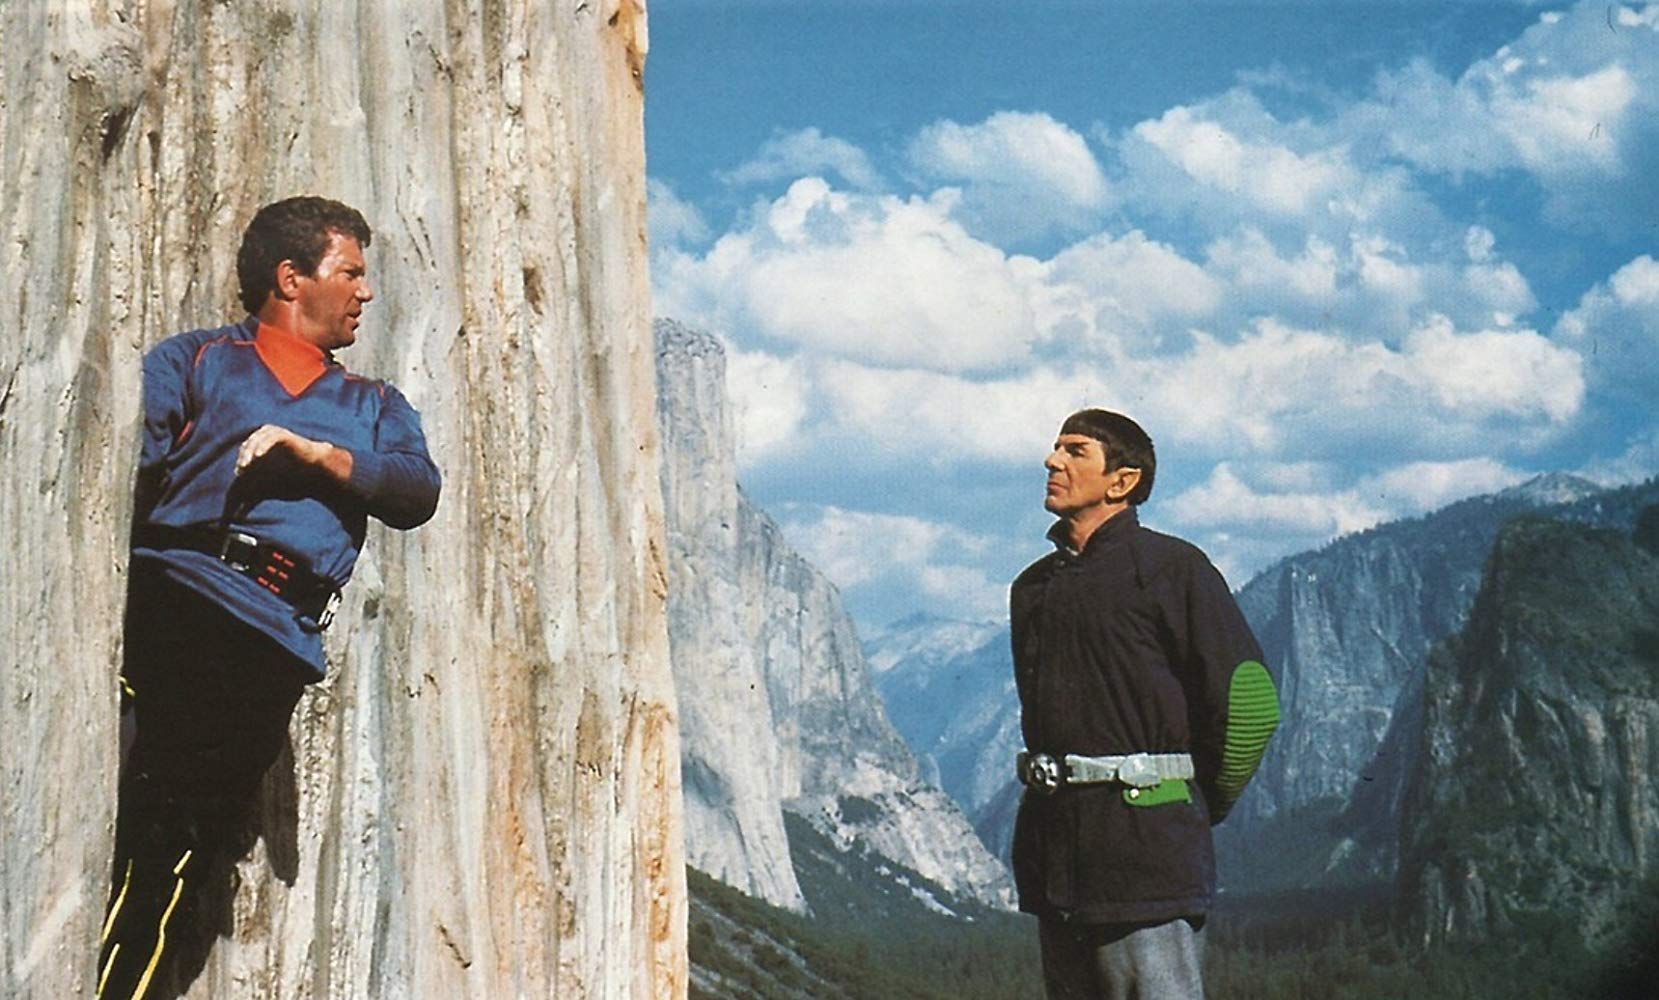 Spock (Leonard Nimoy) wearing jetboots comes to Captain Kirk (William Shatner)'s aid as he climbs El Capitane in Star Trek V: The Final Frontier (1989)